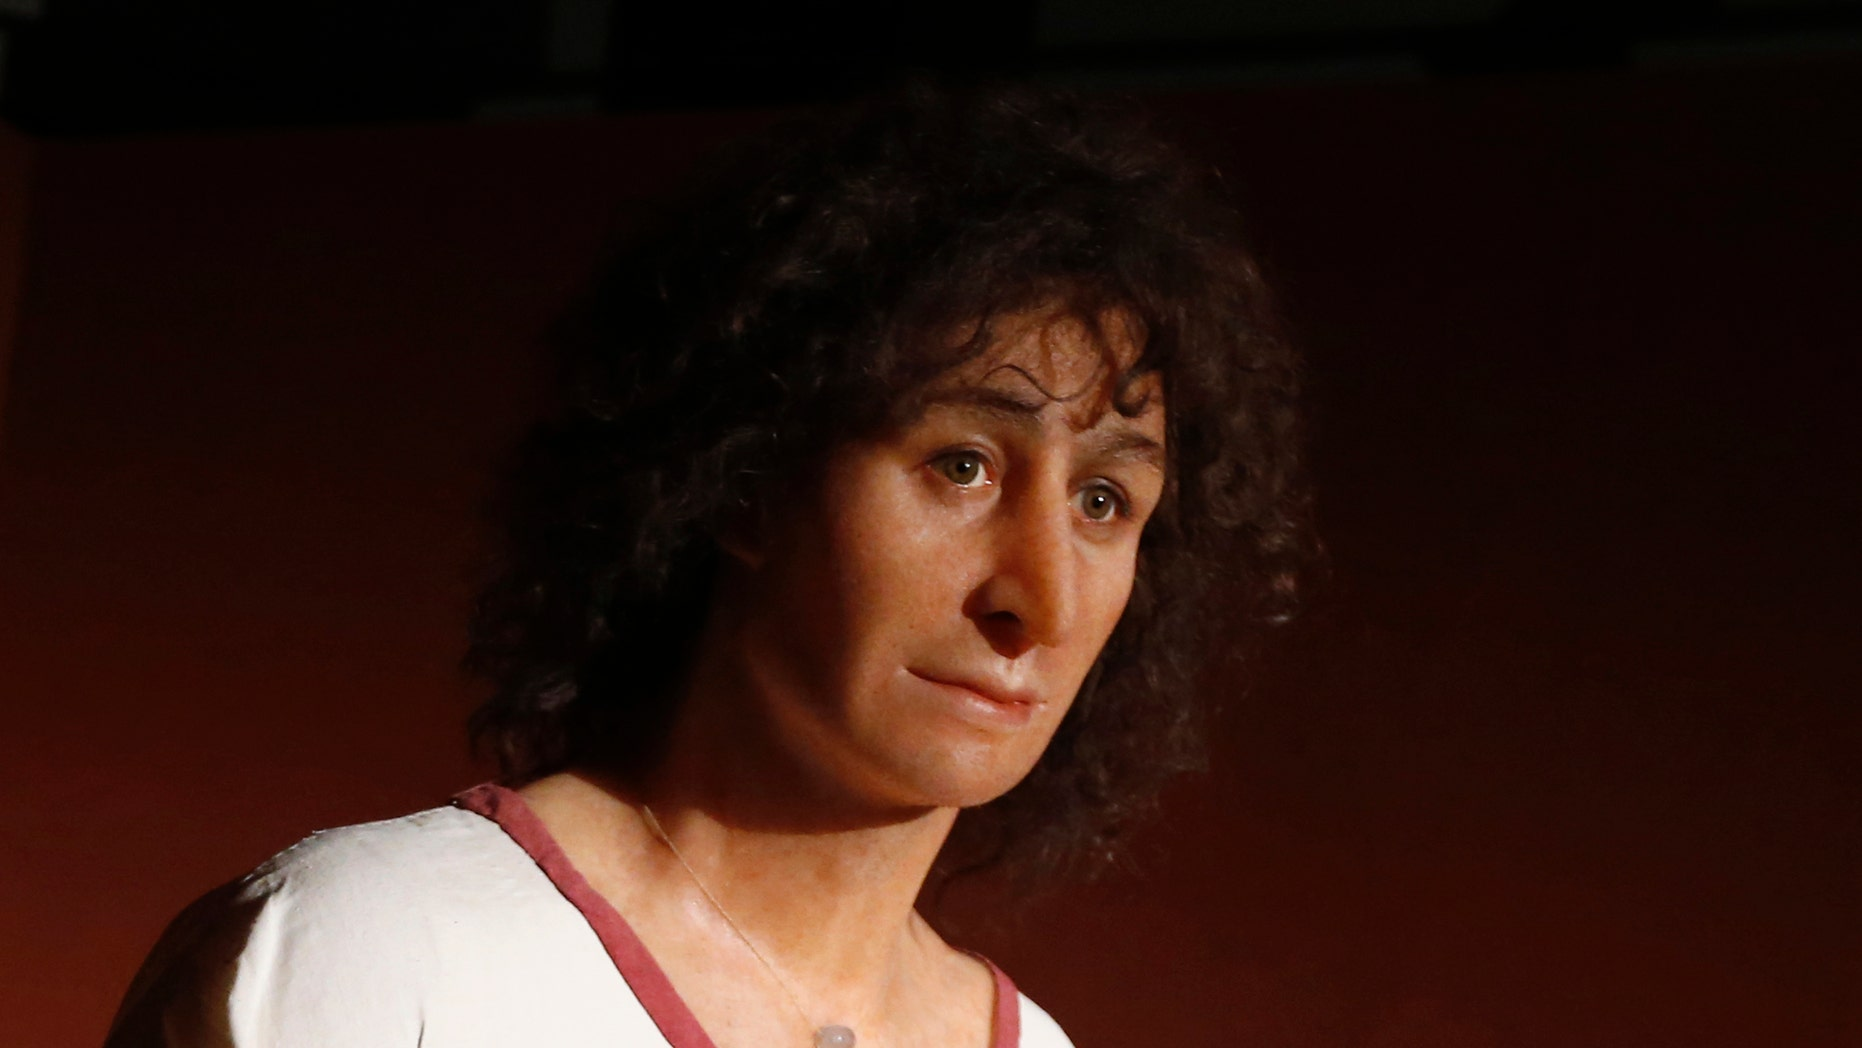 """A wax figure of """"The Young Phoenician Man of Carthage"""" is seen during the opening of a special exhibition at the American University of Beirut (AUB) Archaeological Museum in Beirut January 29, 2014. (REUTERS/Jamal Saidi)"""